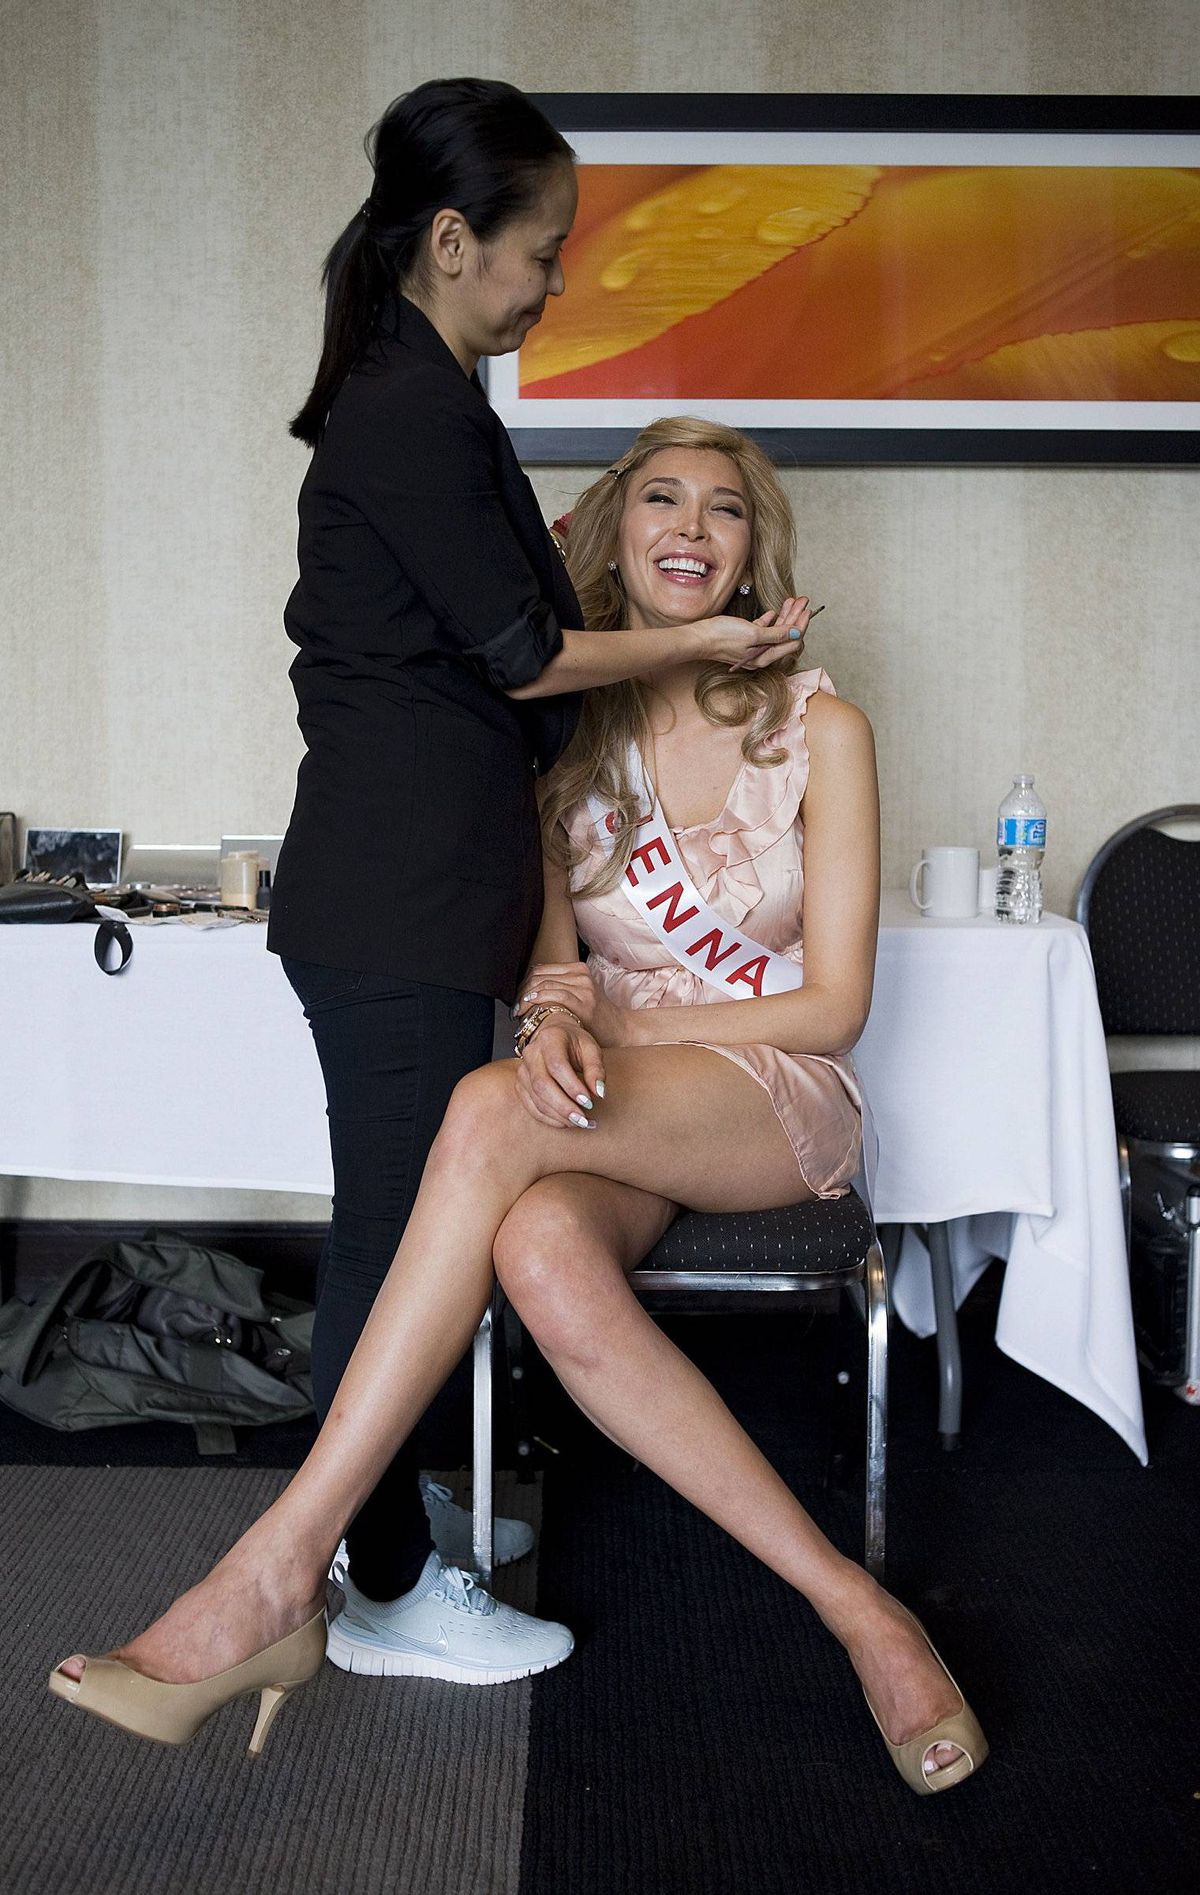 Jenna Talackova, a Canadian transgendered constestant in the Miss Universe pageant, gets ready for a photo shoot at the Sandman Signature Hotel in Toronto on Saturday.